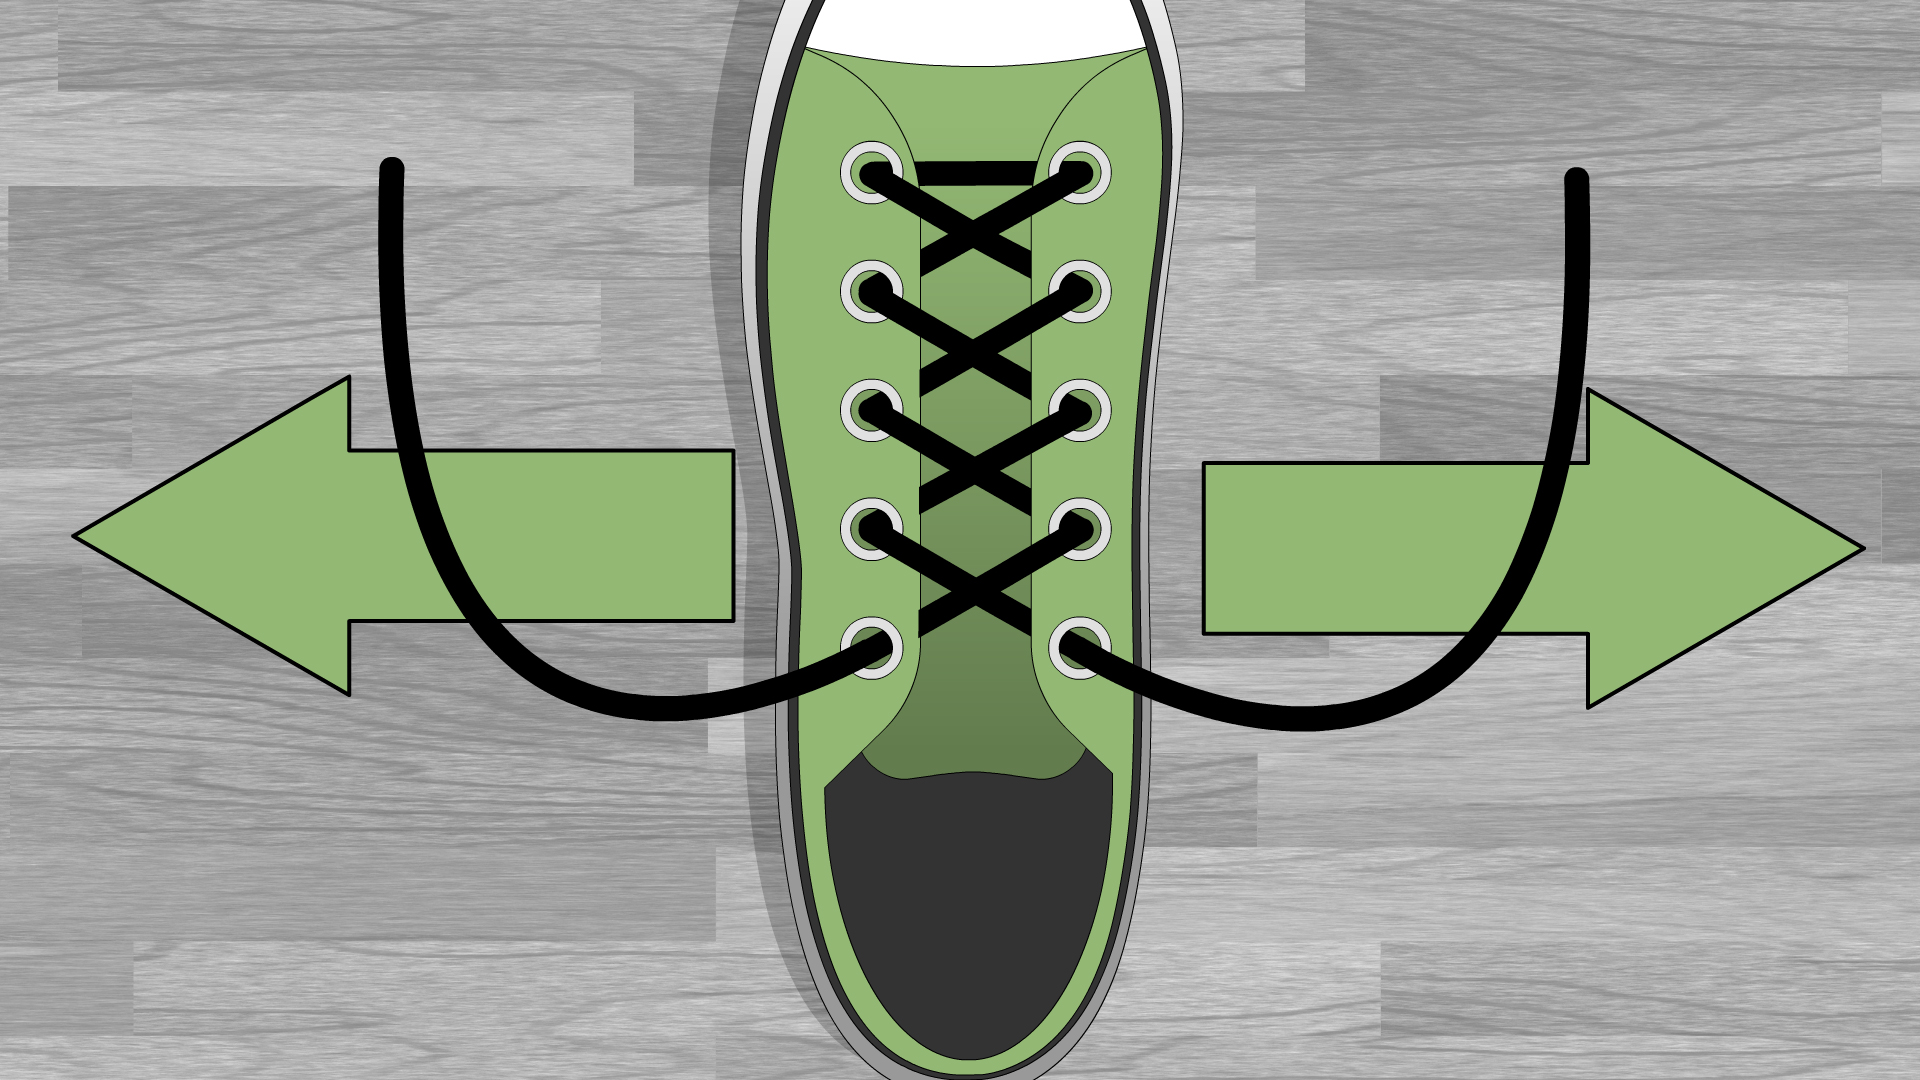 3 Simple Ways To Tie Your Shoes